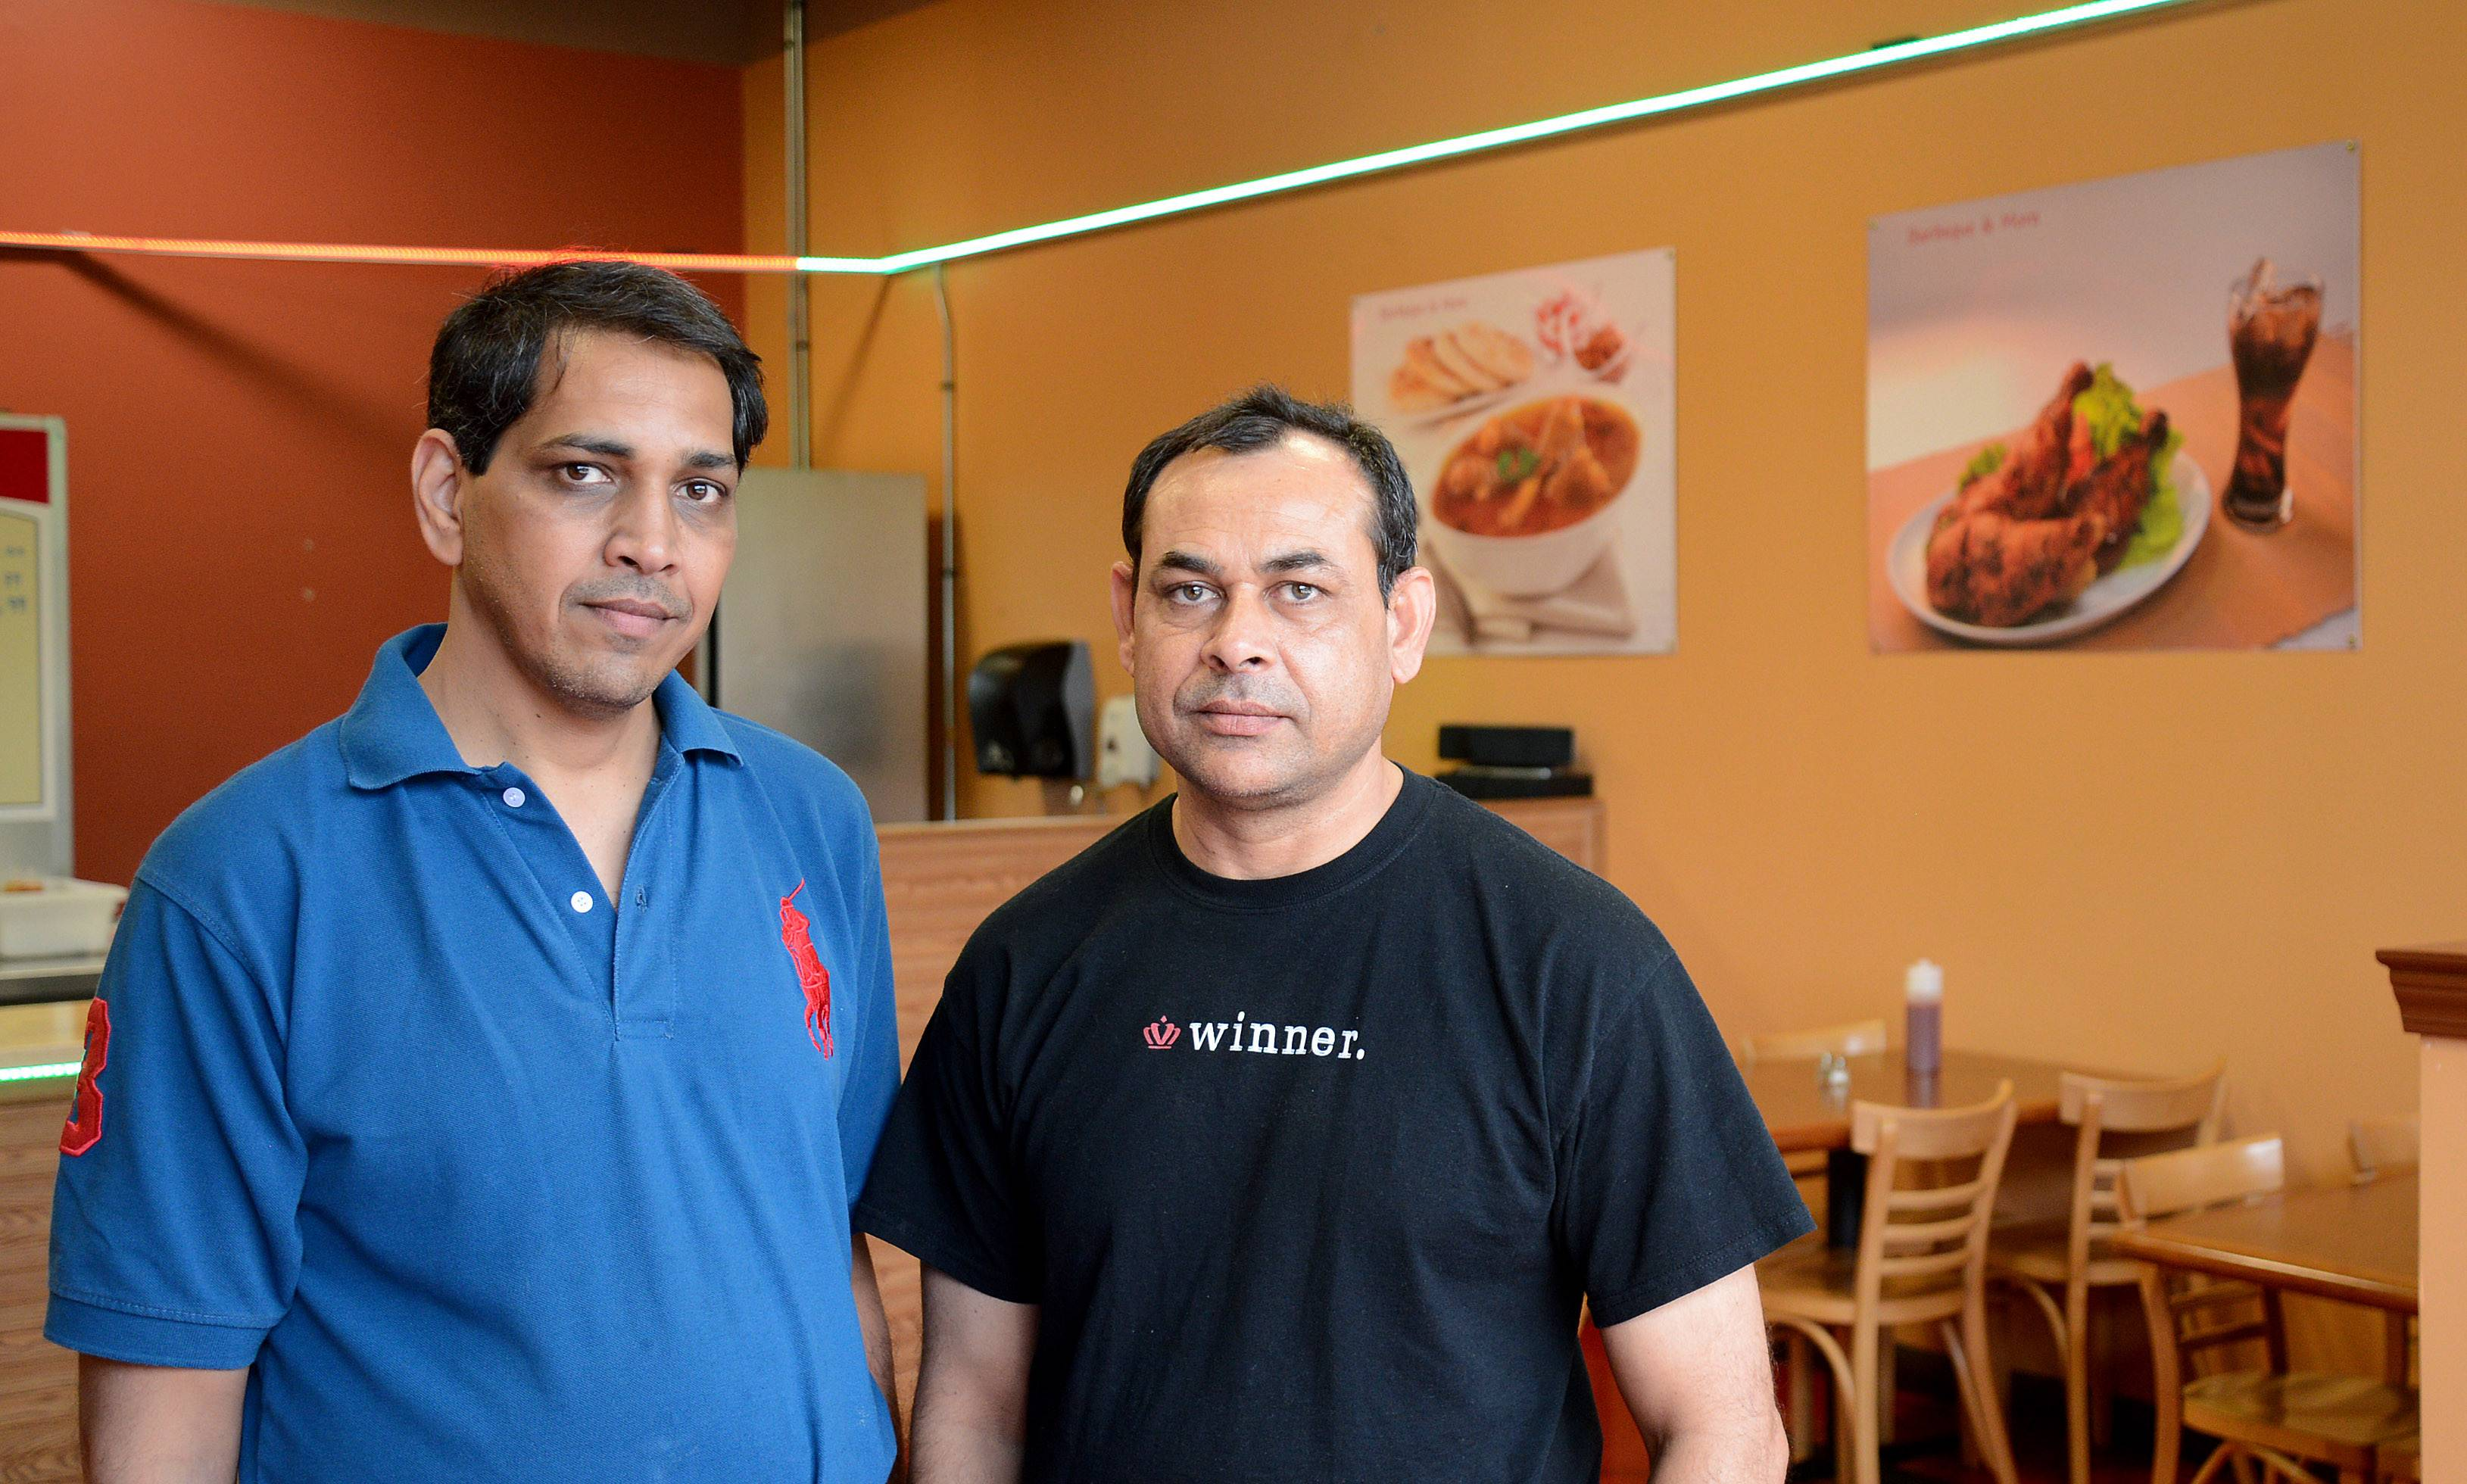 Brothers Shakil Hussain, left, and Ashraf Hussain are owners of Barbeque & More, a new restaurant in Algonquin.